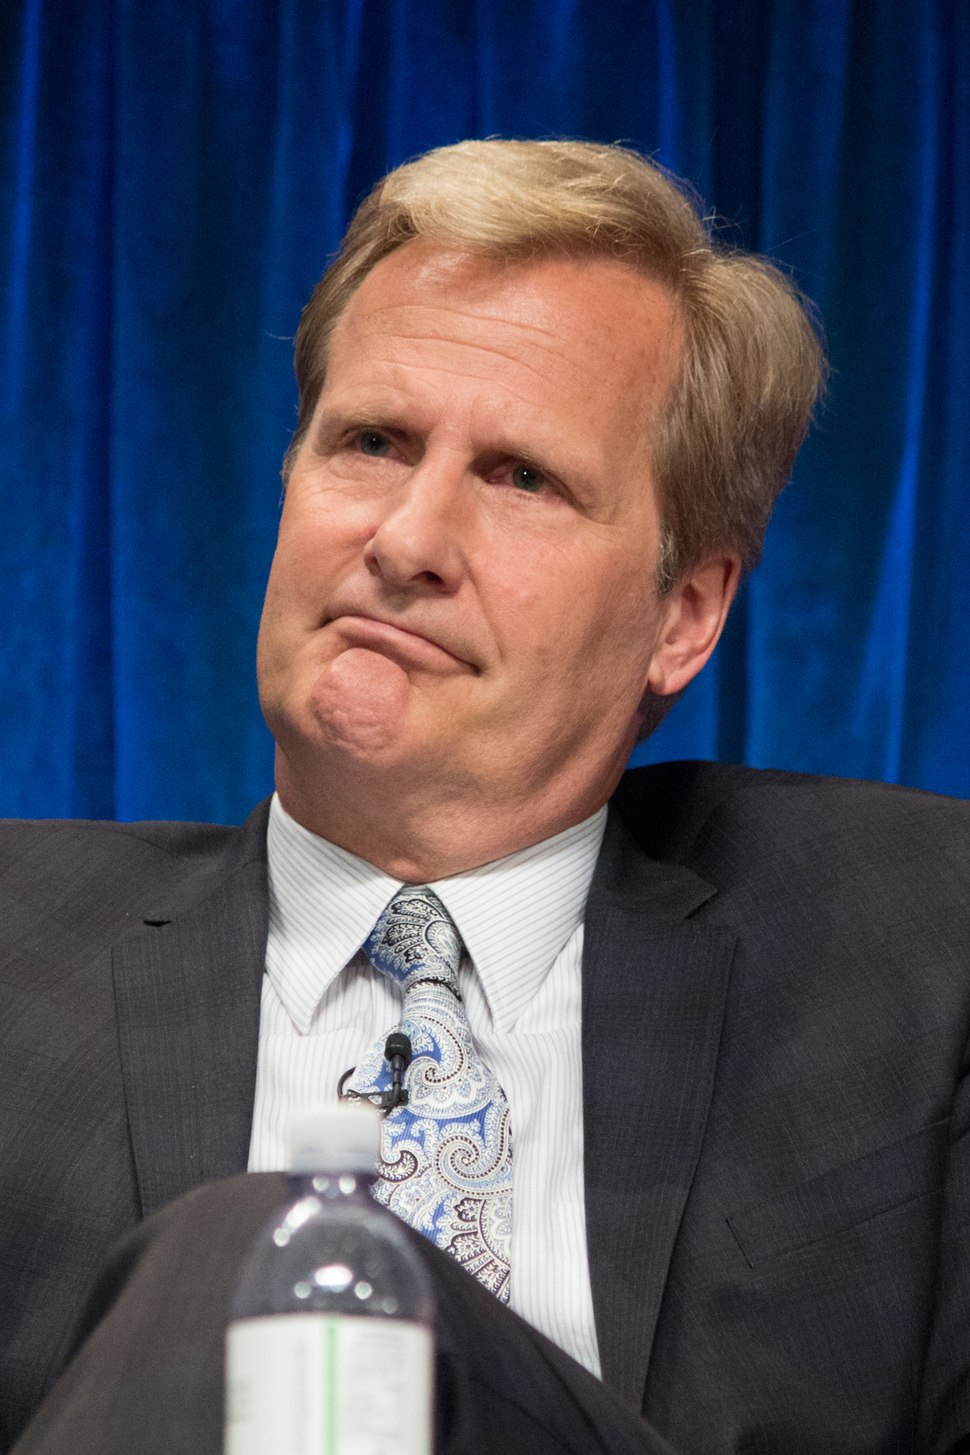 Jeff Daniels at PaleyFest 2013